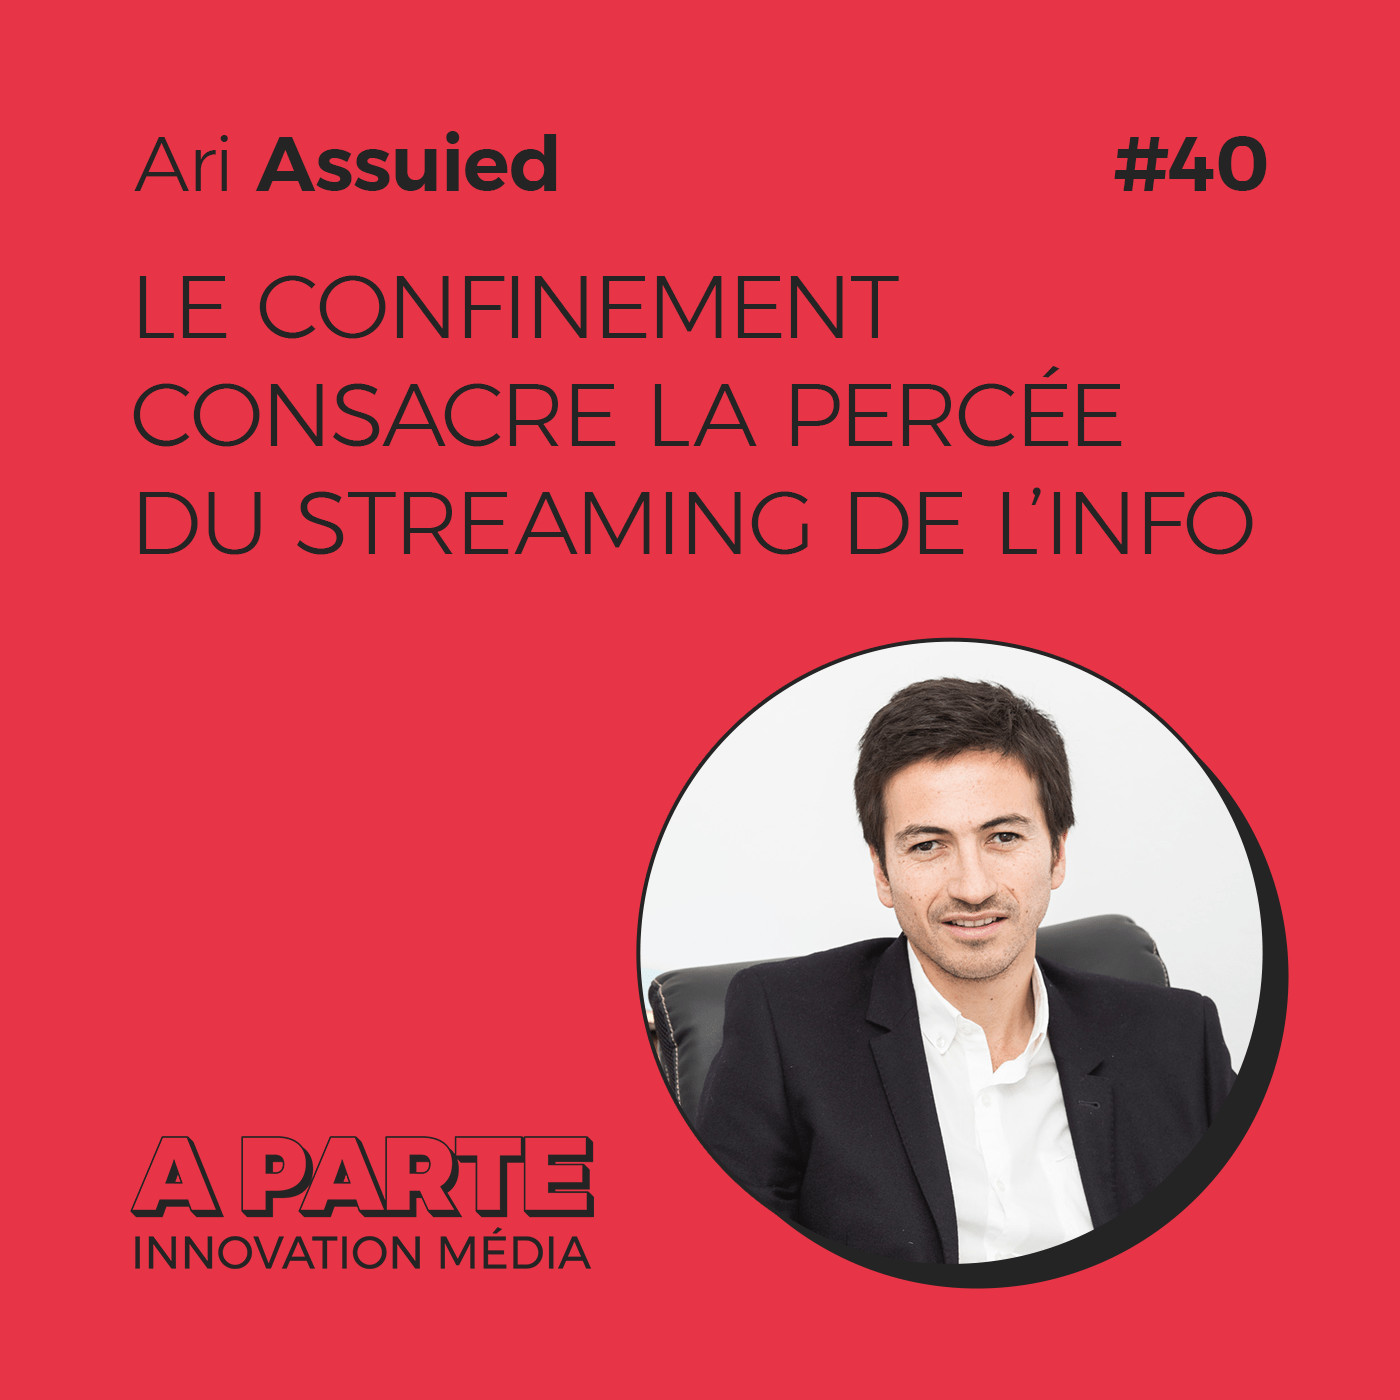 Le confinement consacre la percée du streaming de l'info, avec Ari Assuied